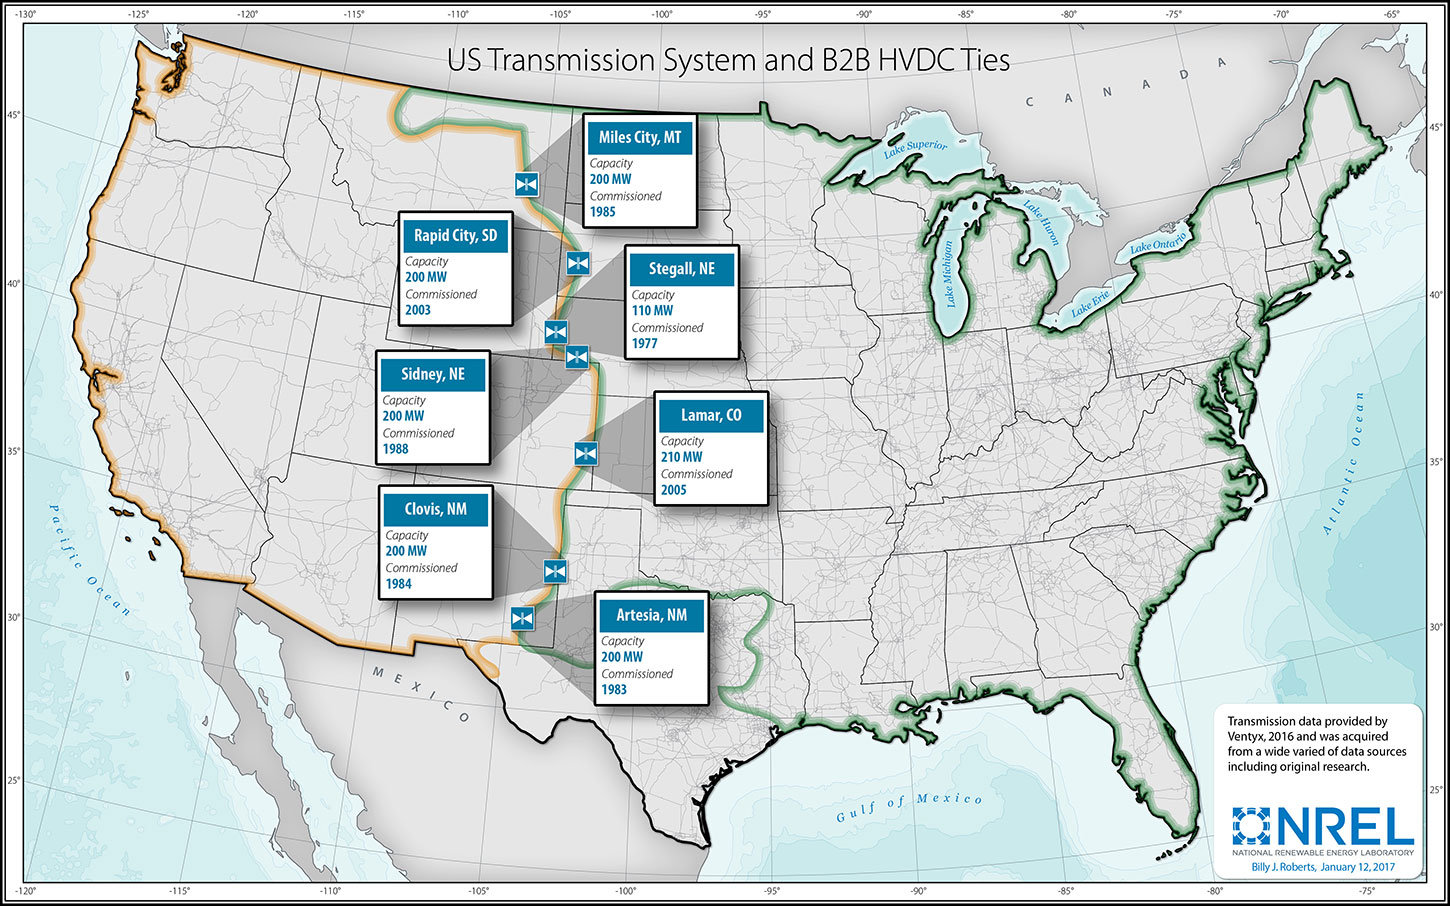 Graphic of a map of the U.S. Transmission system, showing transmission lines across the United States and seven points of high-voltage direct-current power transmission ties in Miles City, MT; Rapid City, SD; Stegall, NE; Sidney, NE; Lamar, CO; Clovis, NM; and  Artesia, NM.